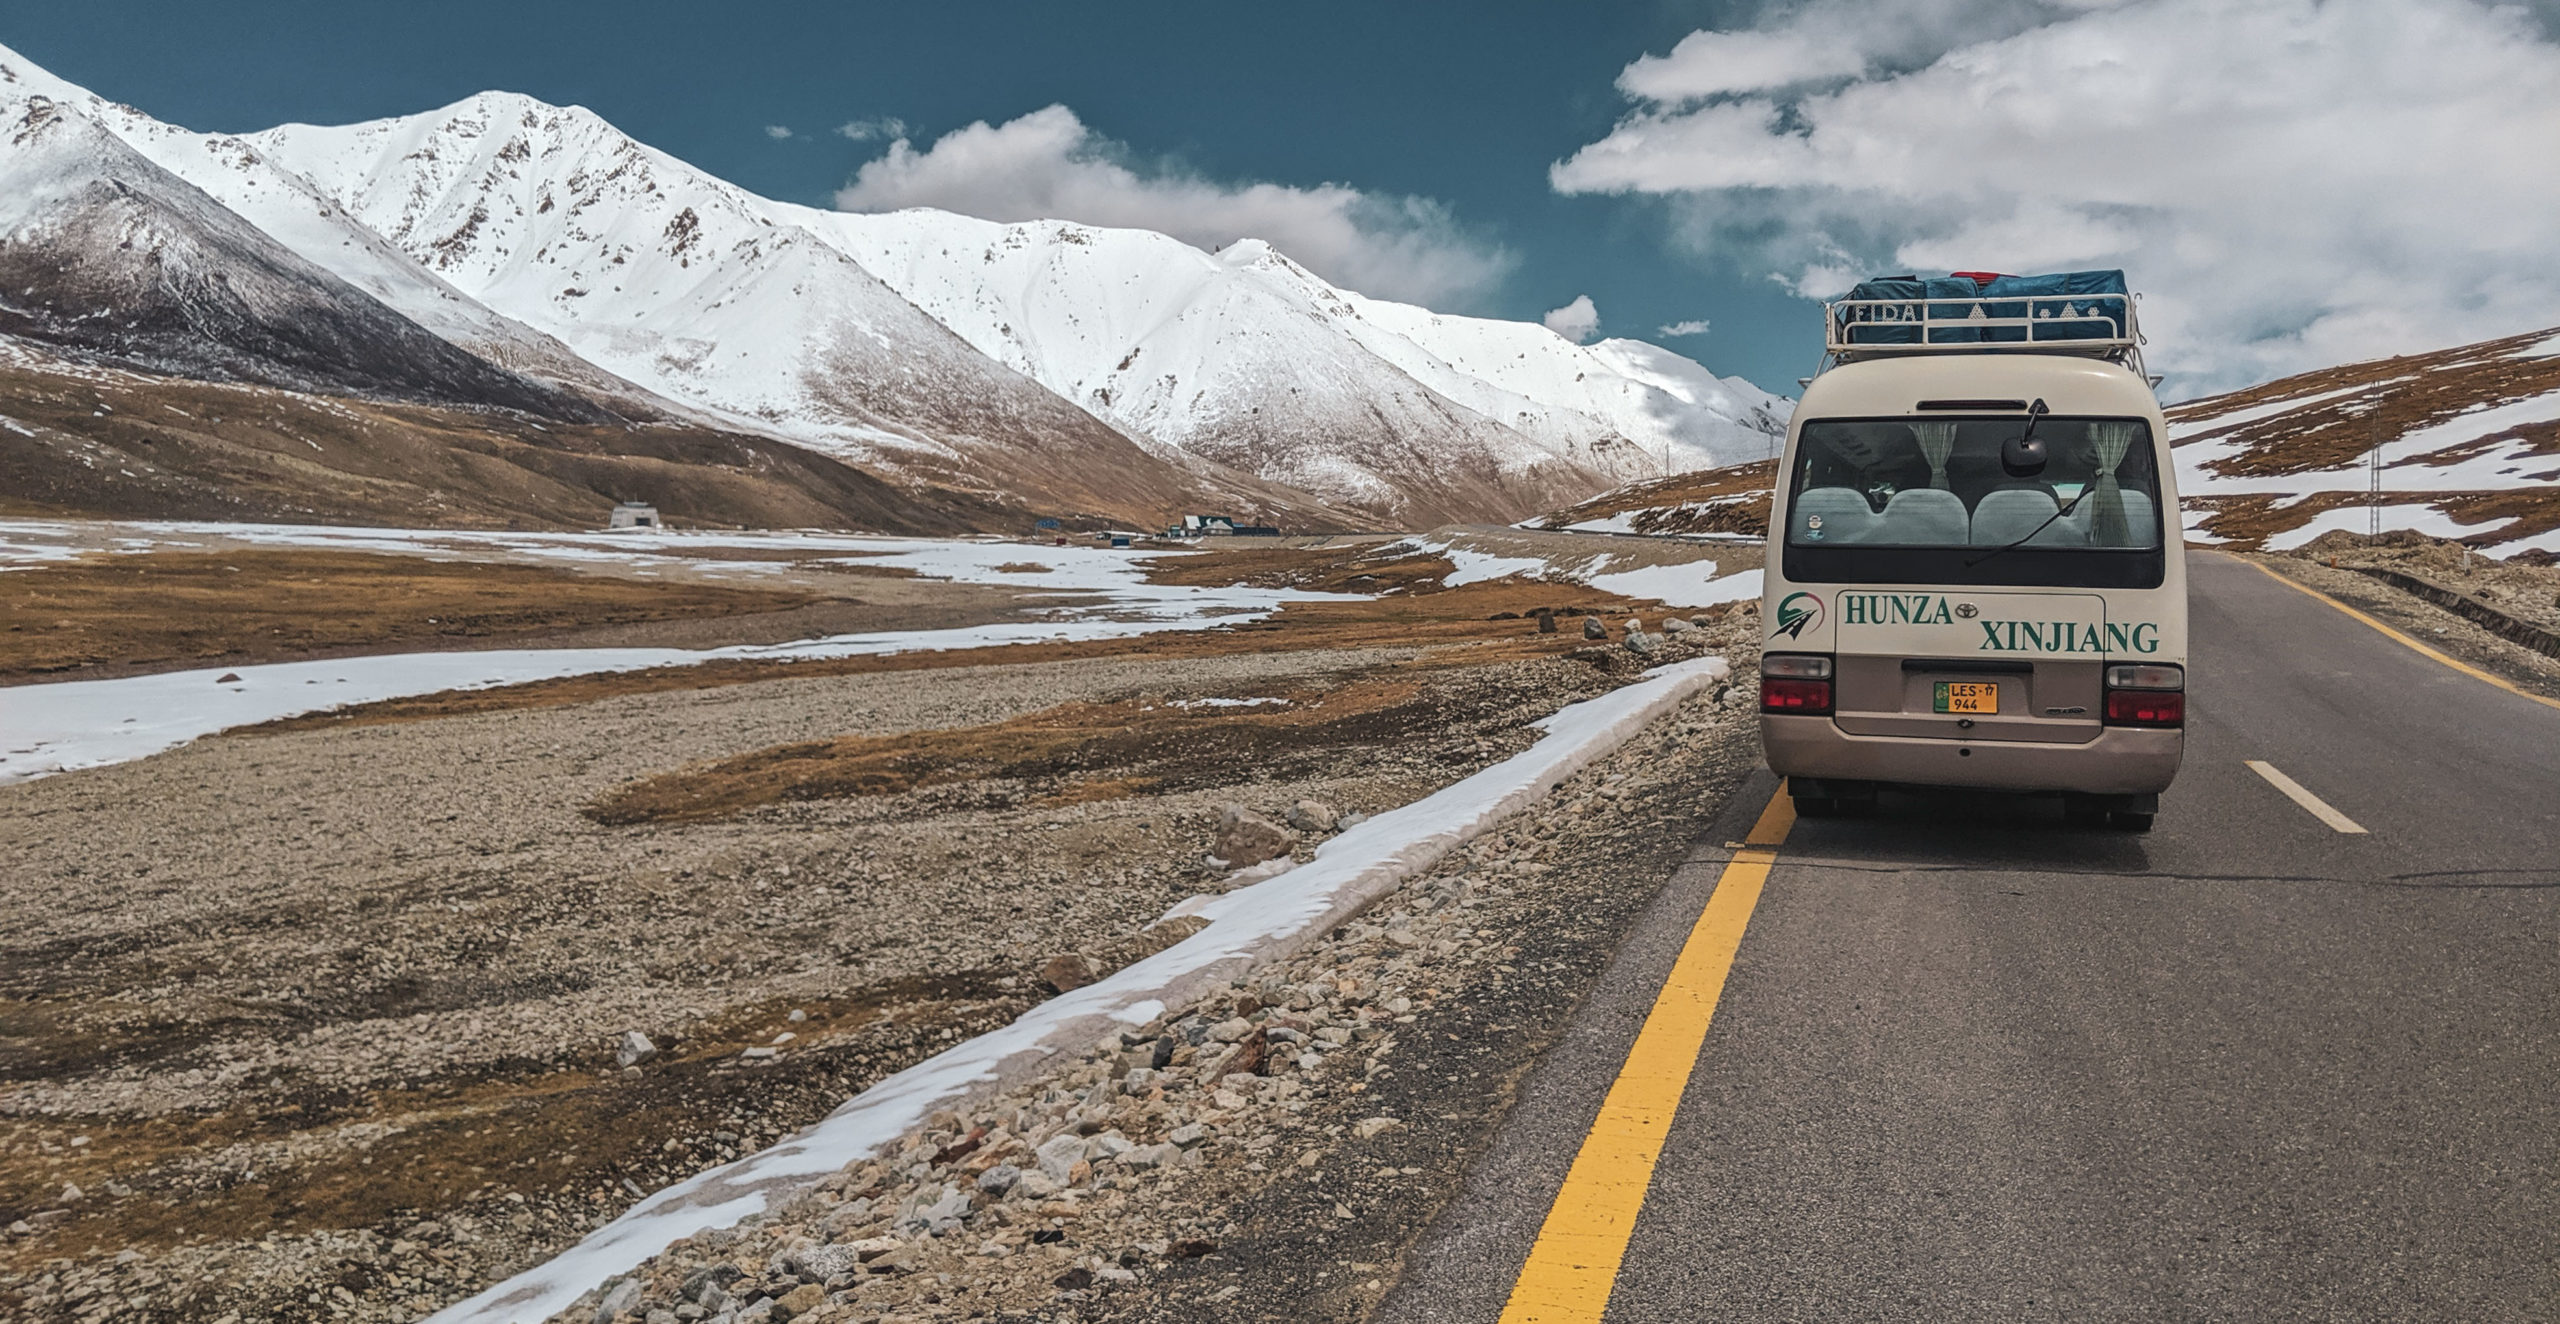 Crossing the Khunjerab Pass into China from Pakistan